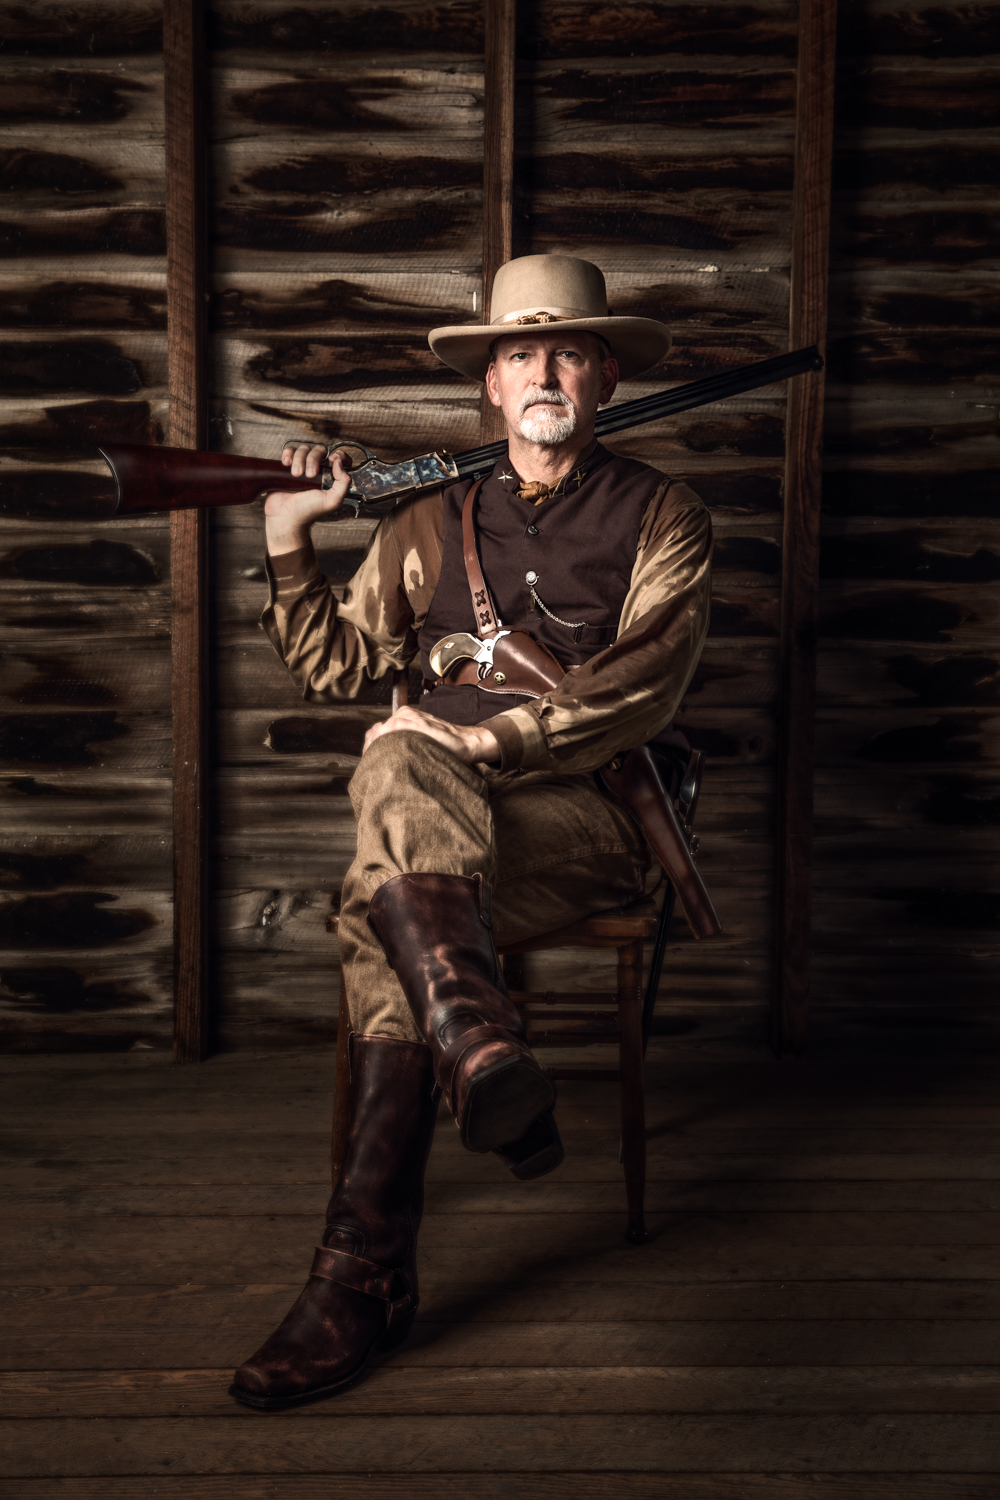 Cowboy Shoot-433-Edit.jpg